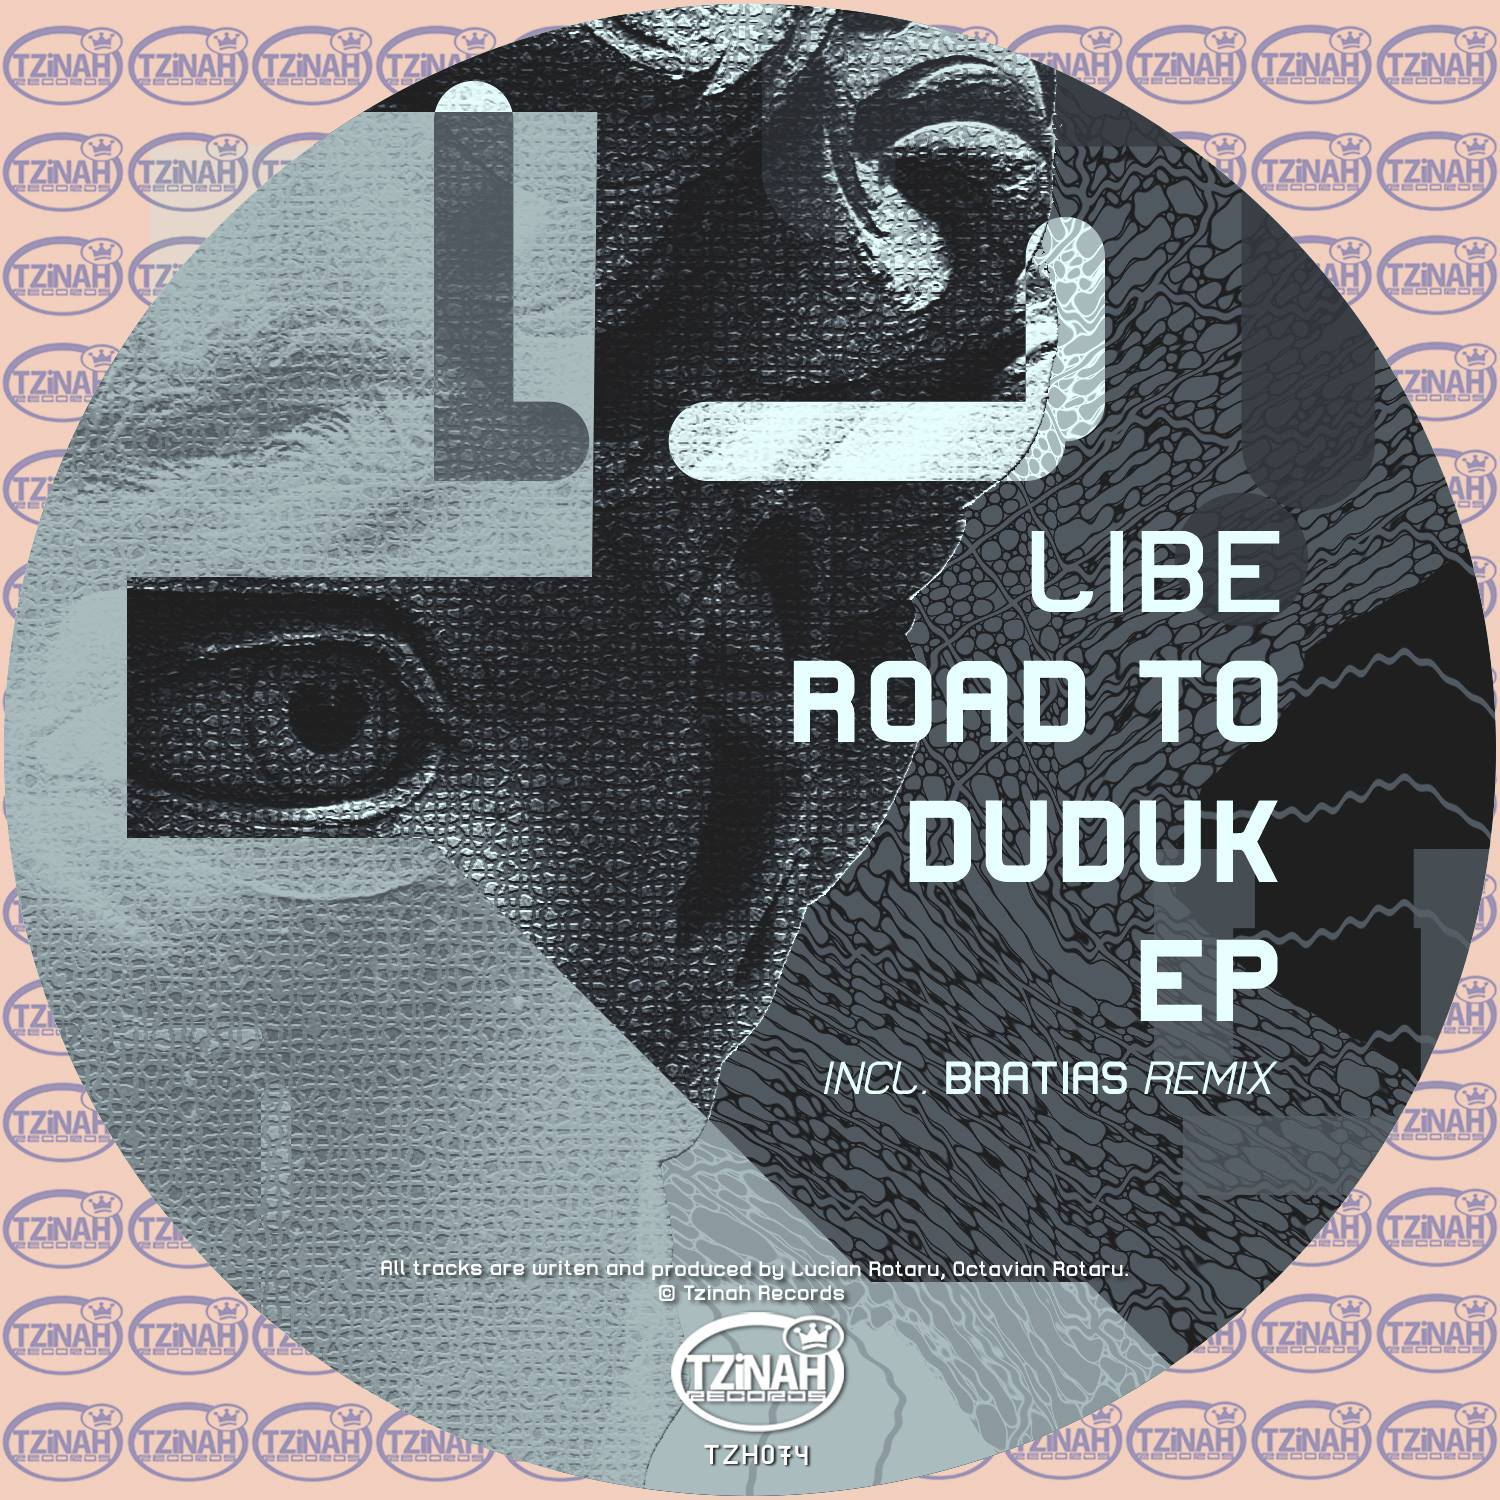 Libe - Road to Duduk EP